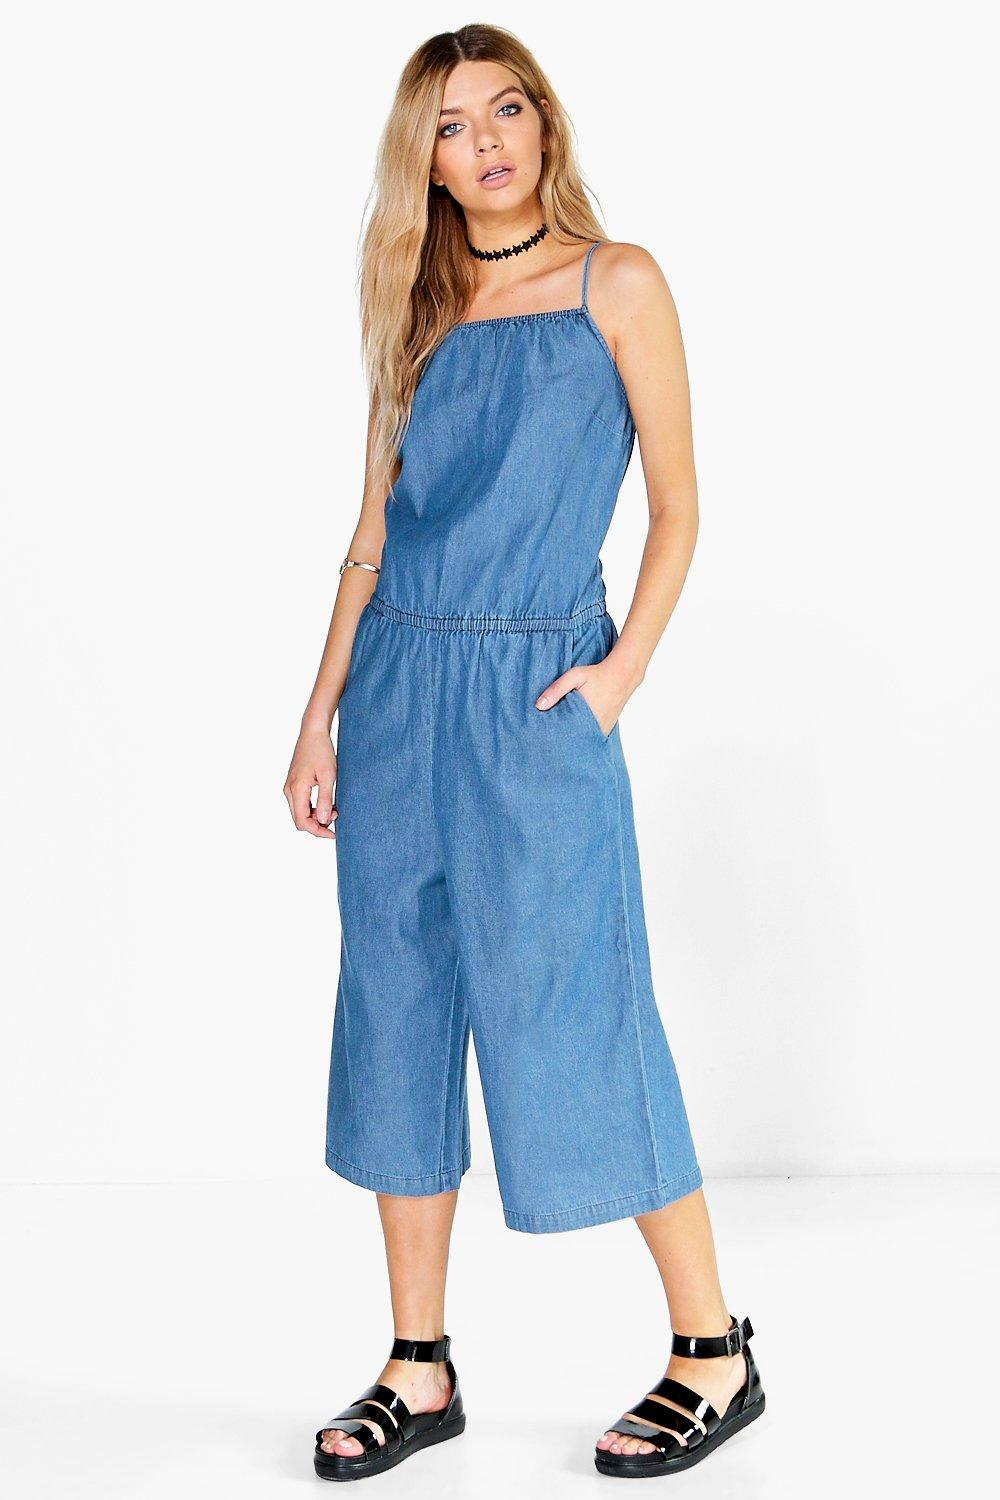 Buy Cheap Denim Jumpsuit - Compare Womenu0026#39;s Outerwear Prices For Best UK Deals